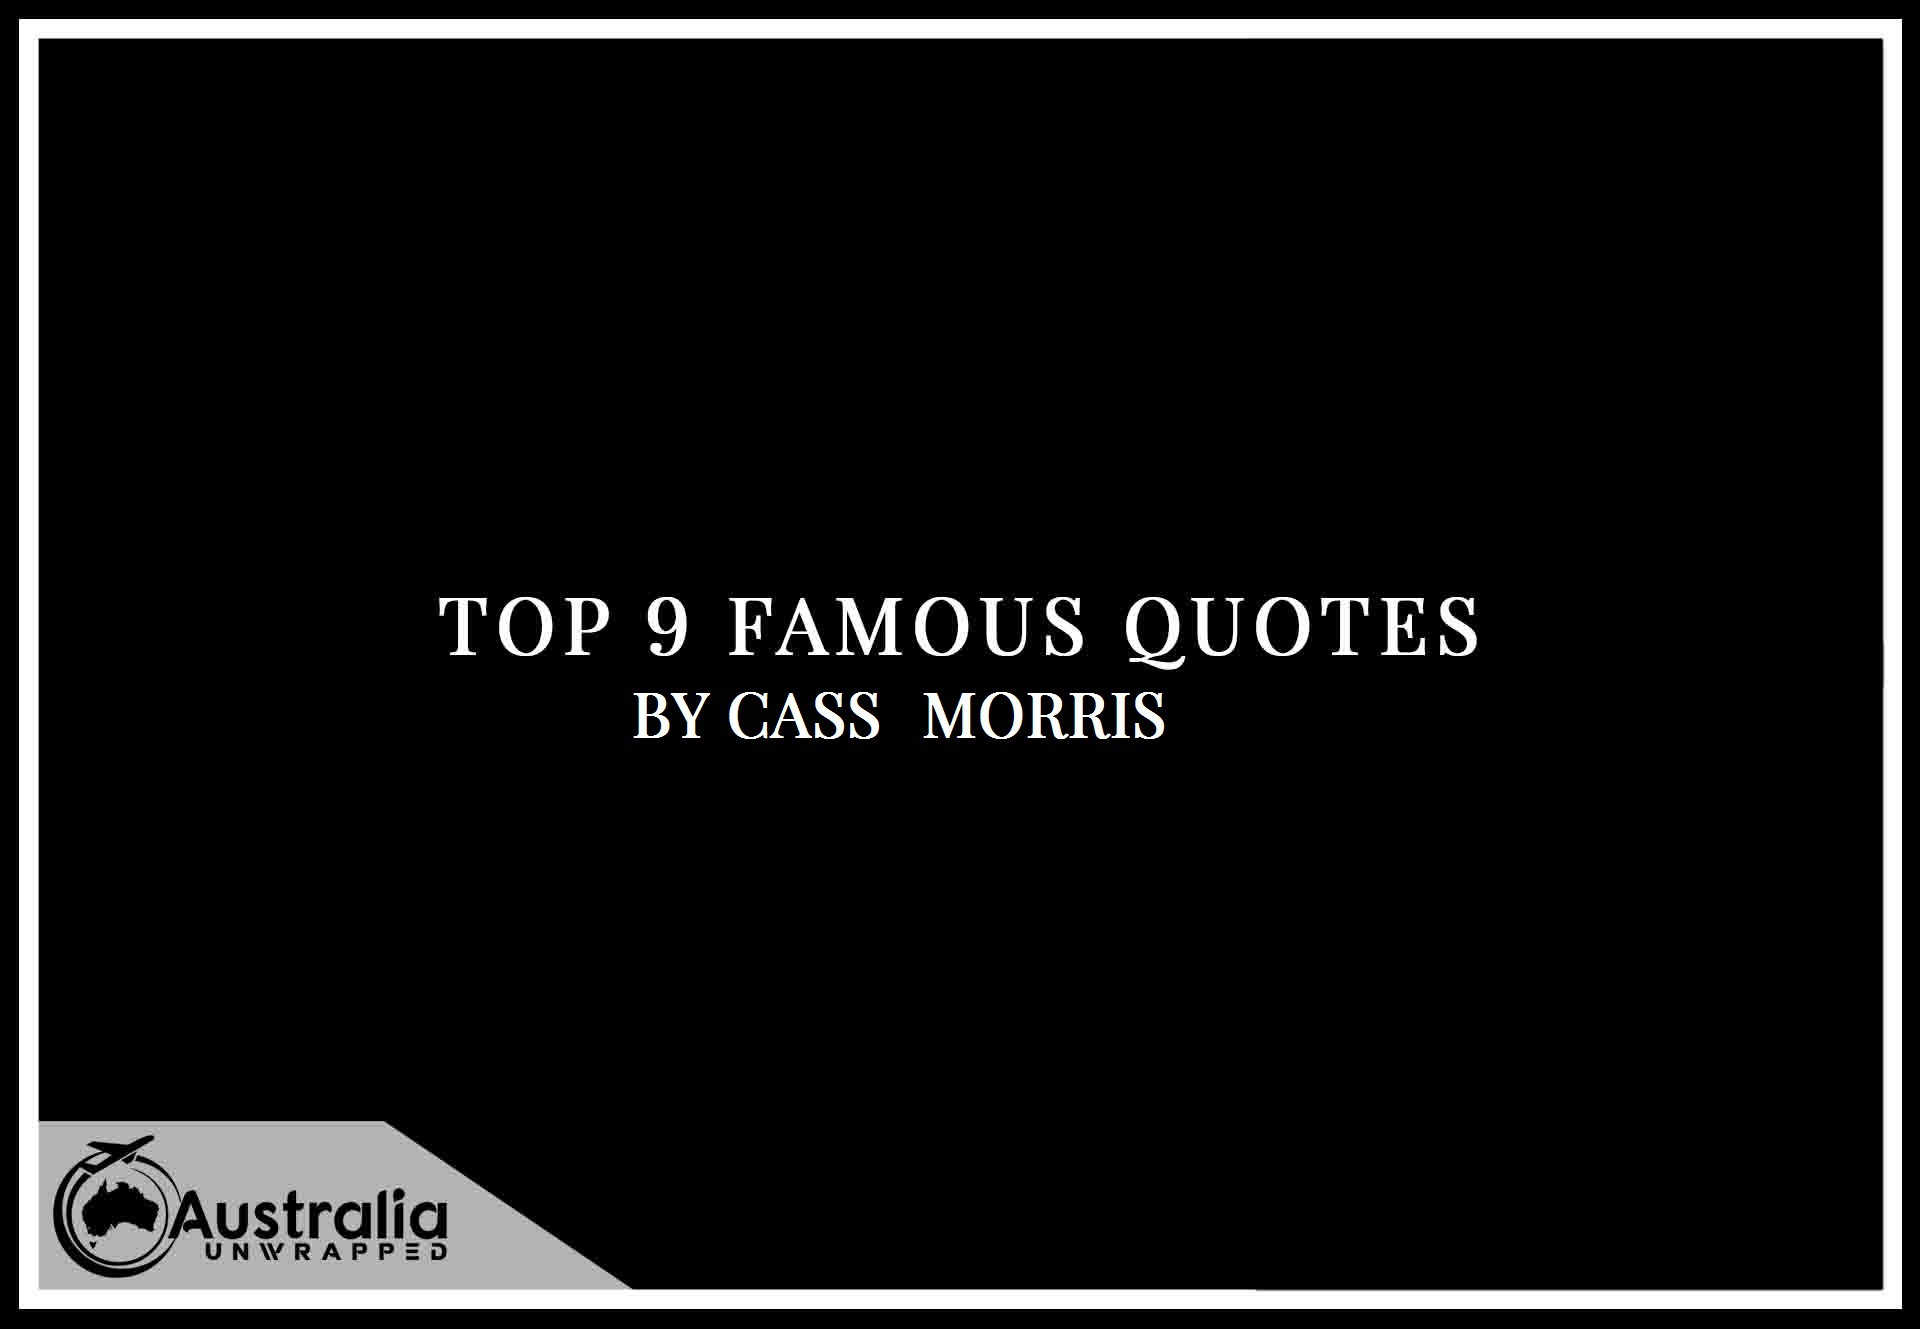 Cass Morris's Top 9 Popular and Famous Quotes